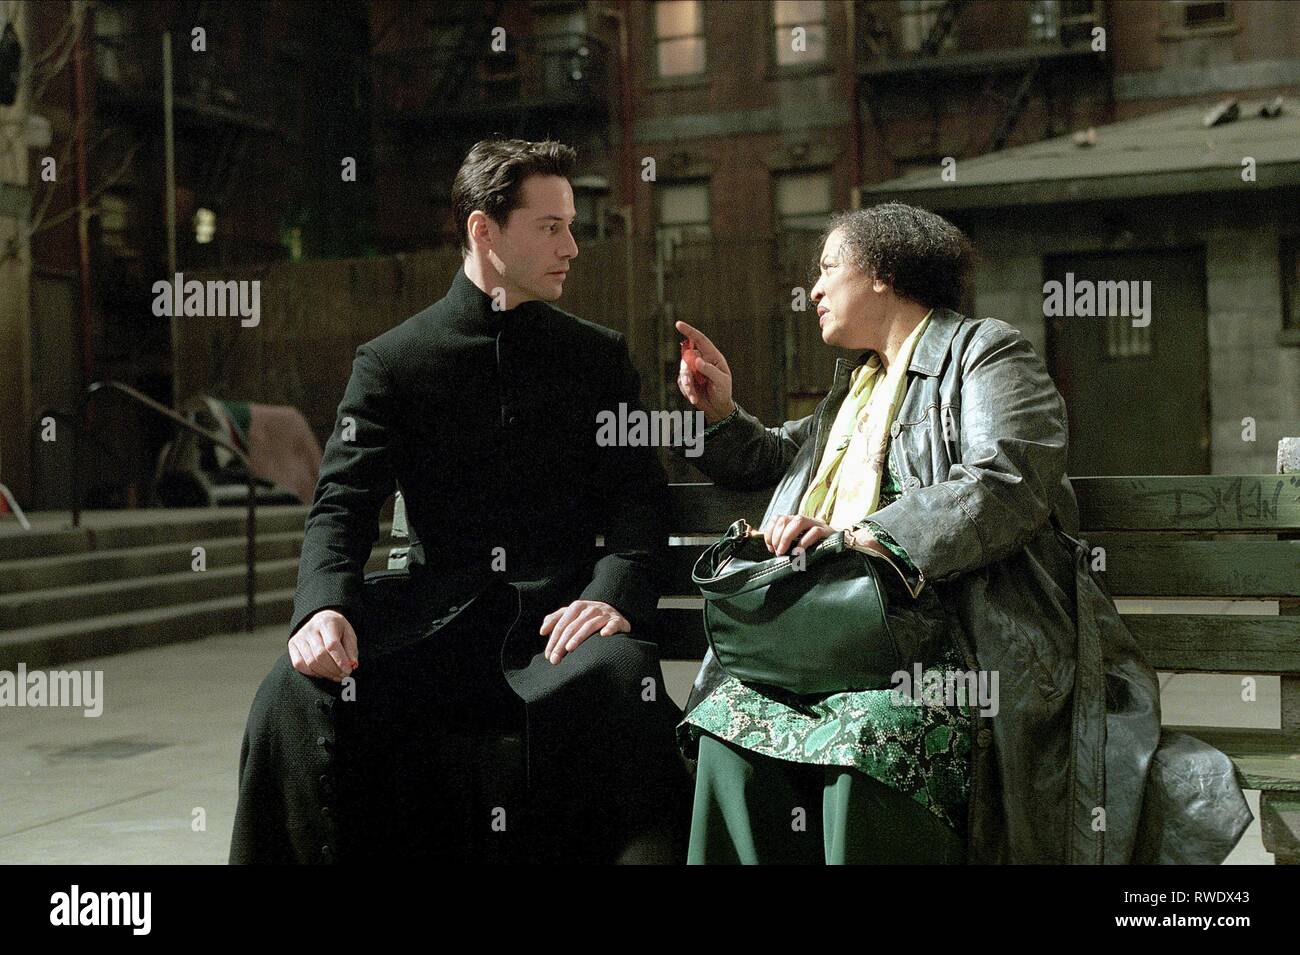 REEVES,FOSTER, THE MATRIX RELOADED, 2003 - Stock Image